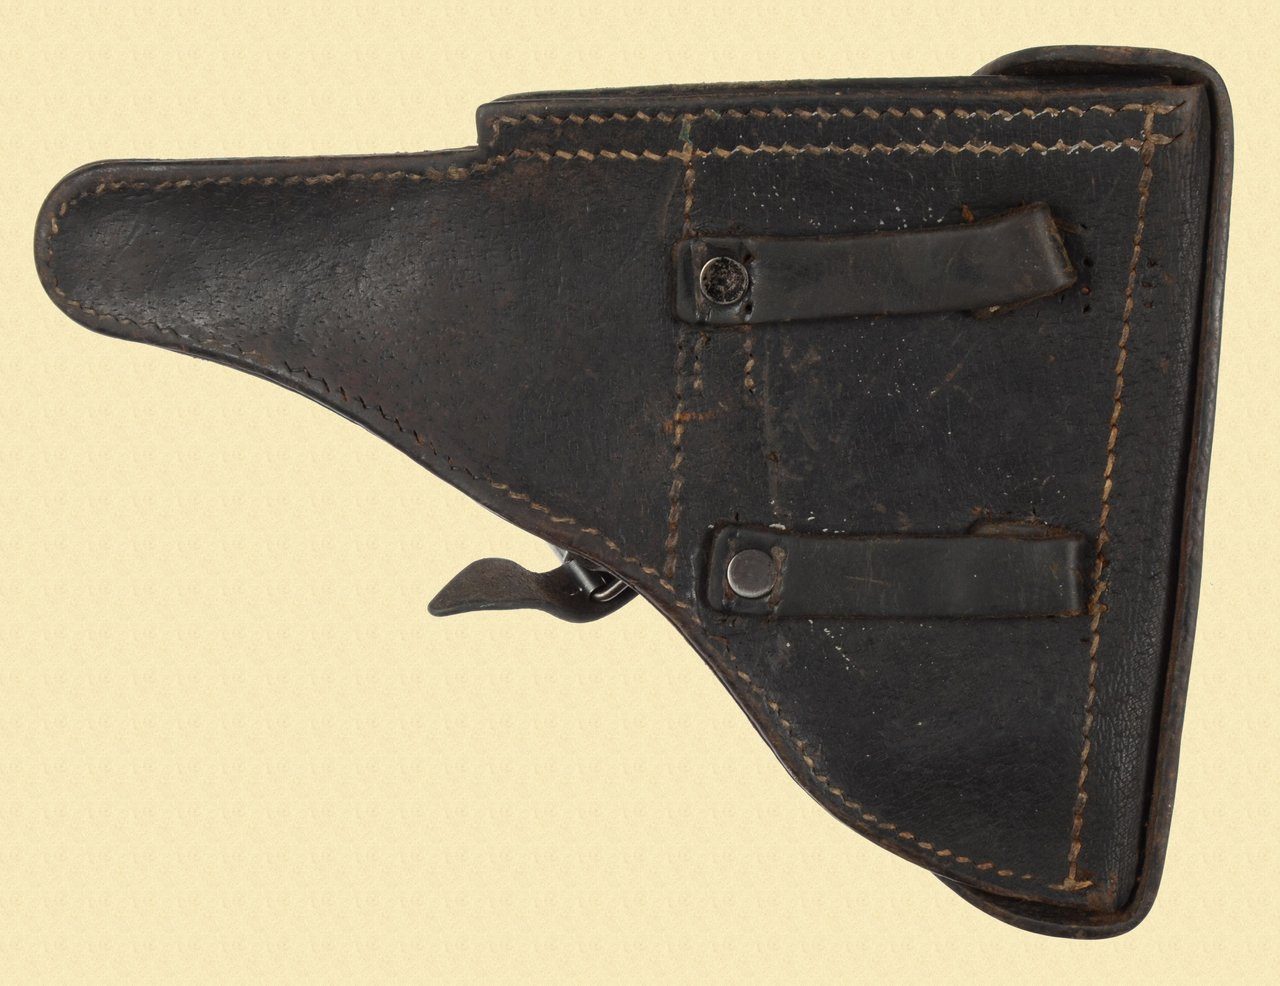 LUGER P.08 HOLSTER - C23927